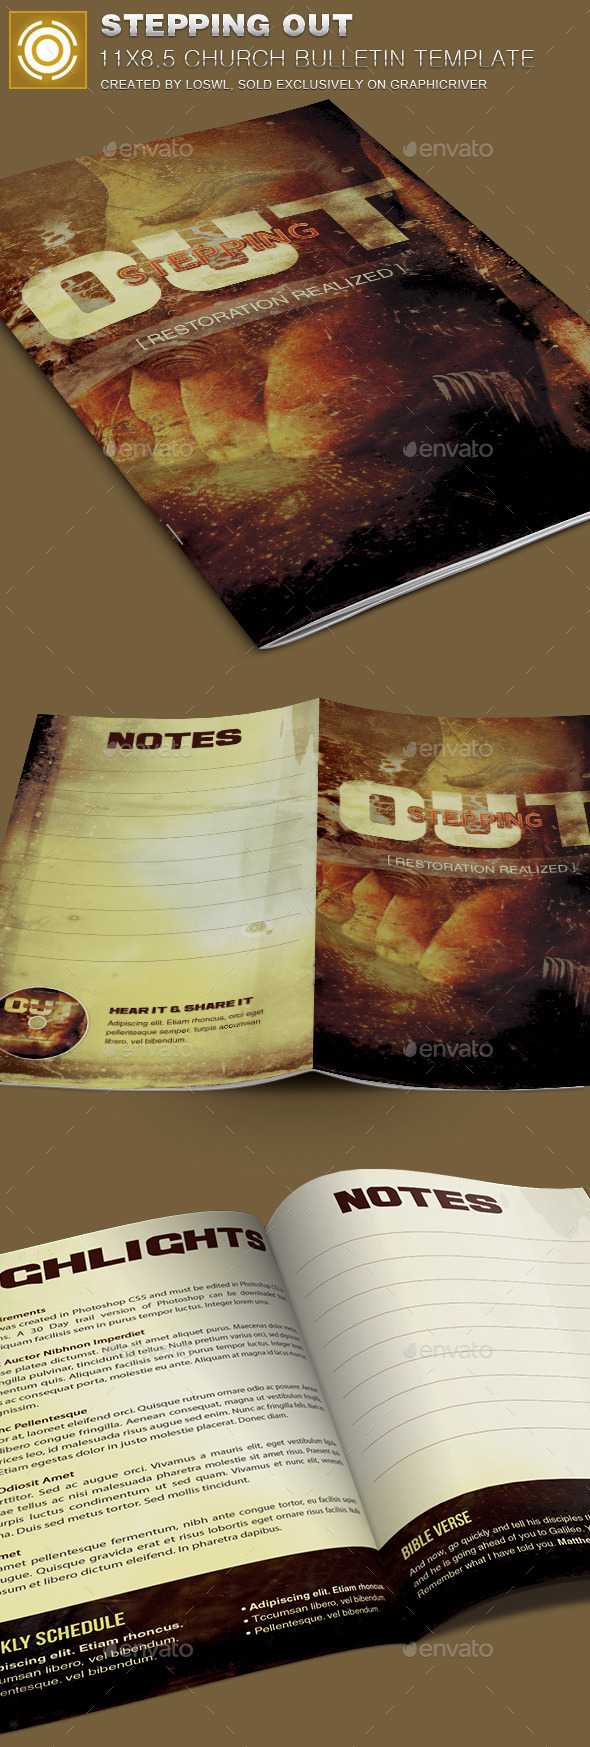 Stepping Out Church Bulletin Template - Brochures Print Templates